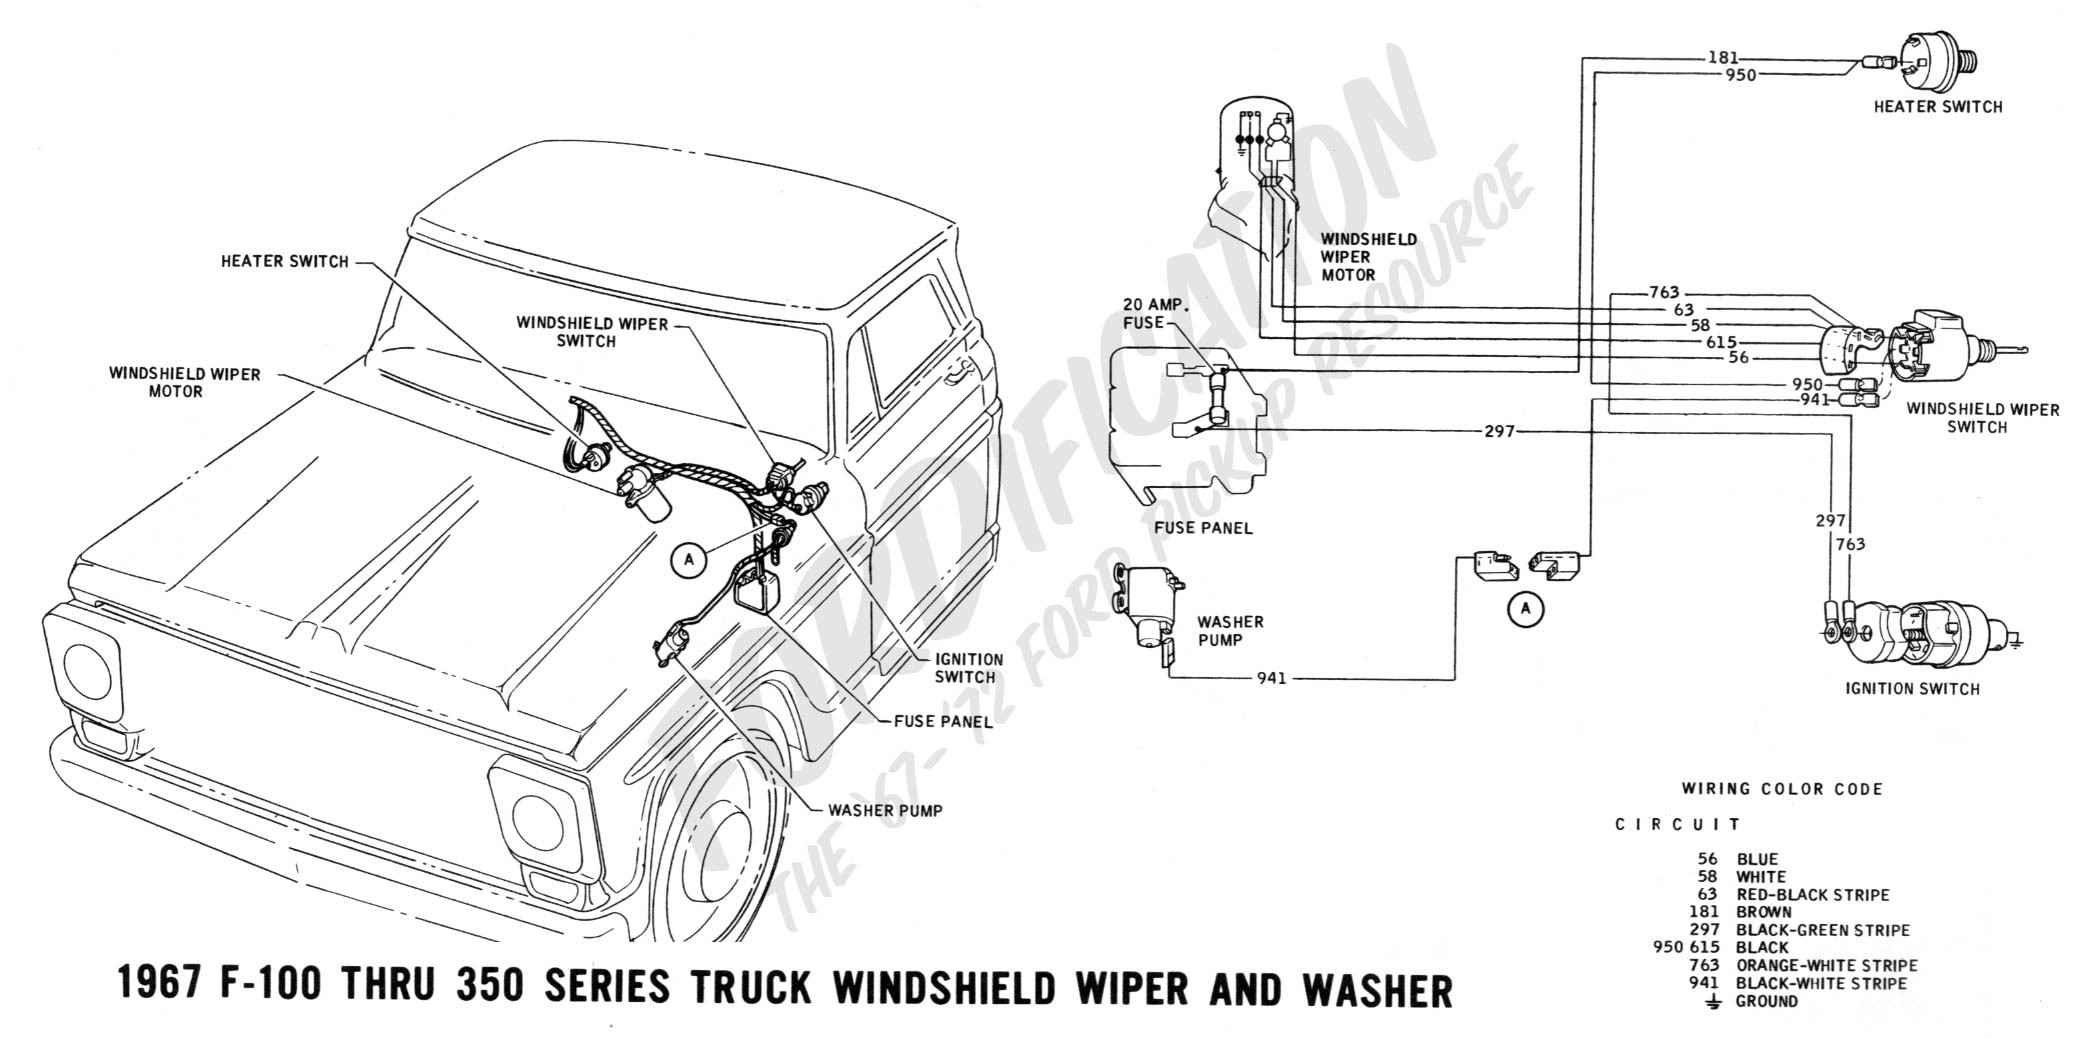 1965 chevy c10 wiper motor wiring diagram  u2022 wiring diagram for free